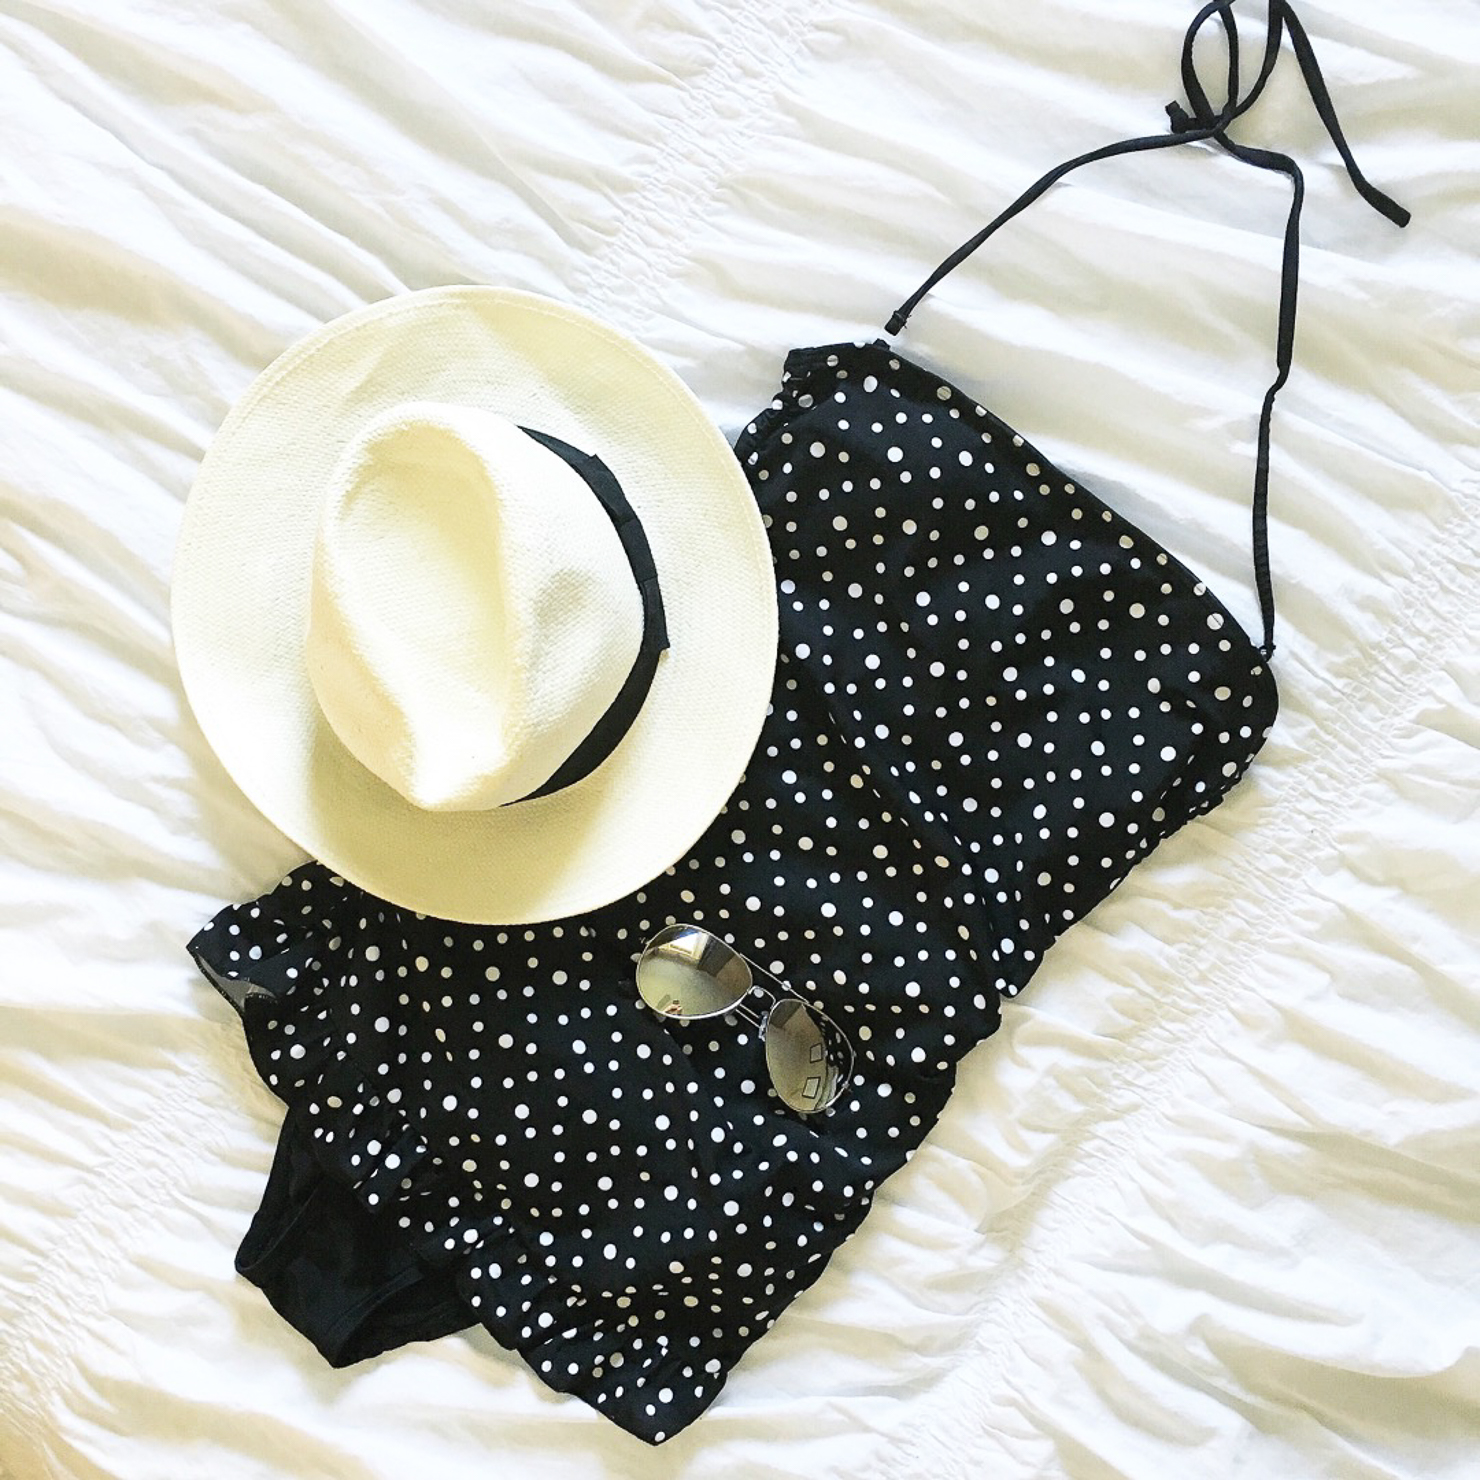 black-and-white-retro-style-swimsuit